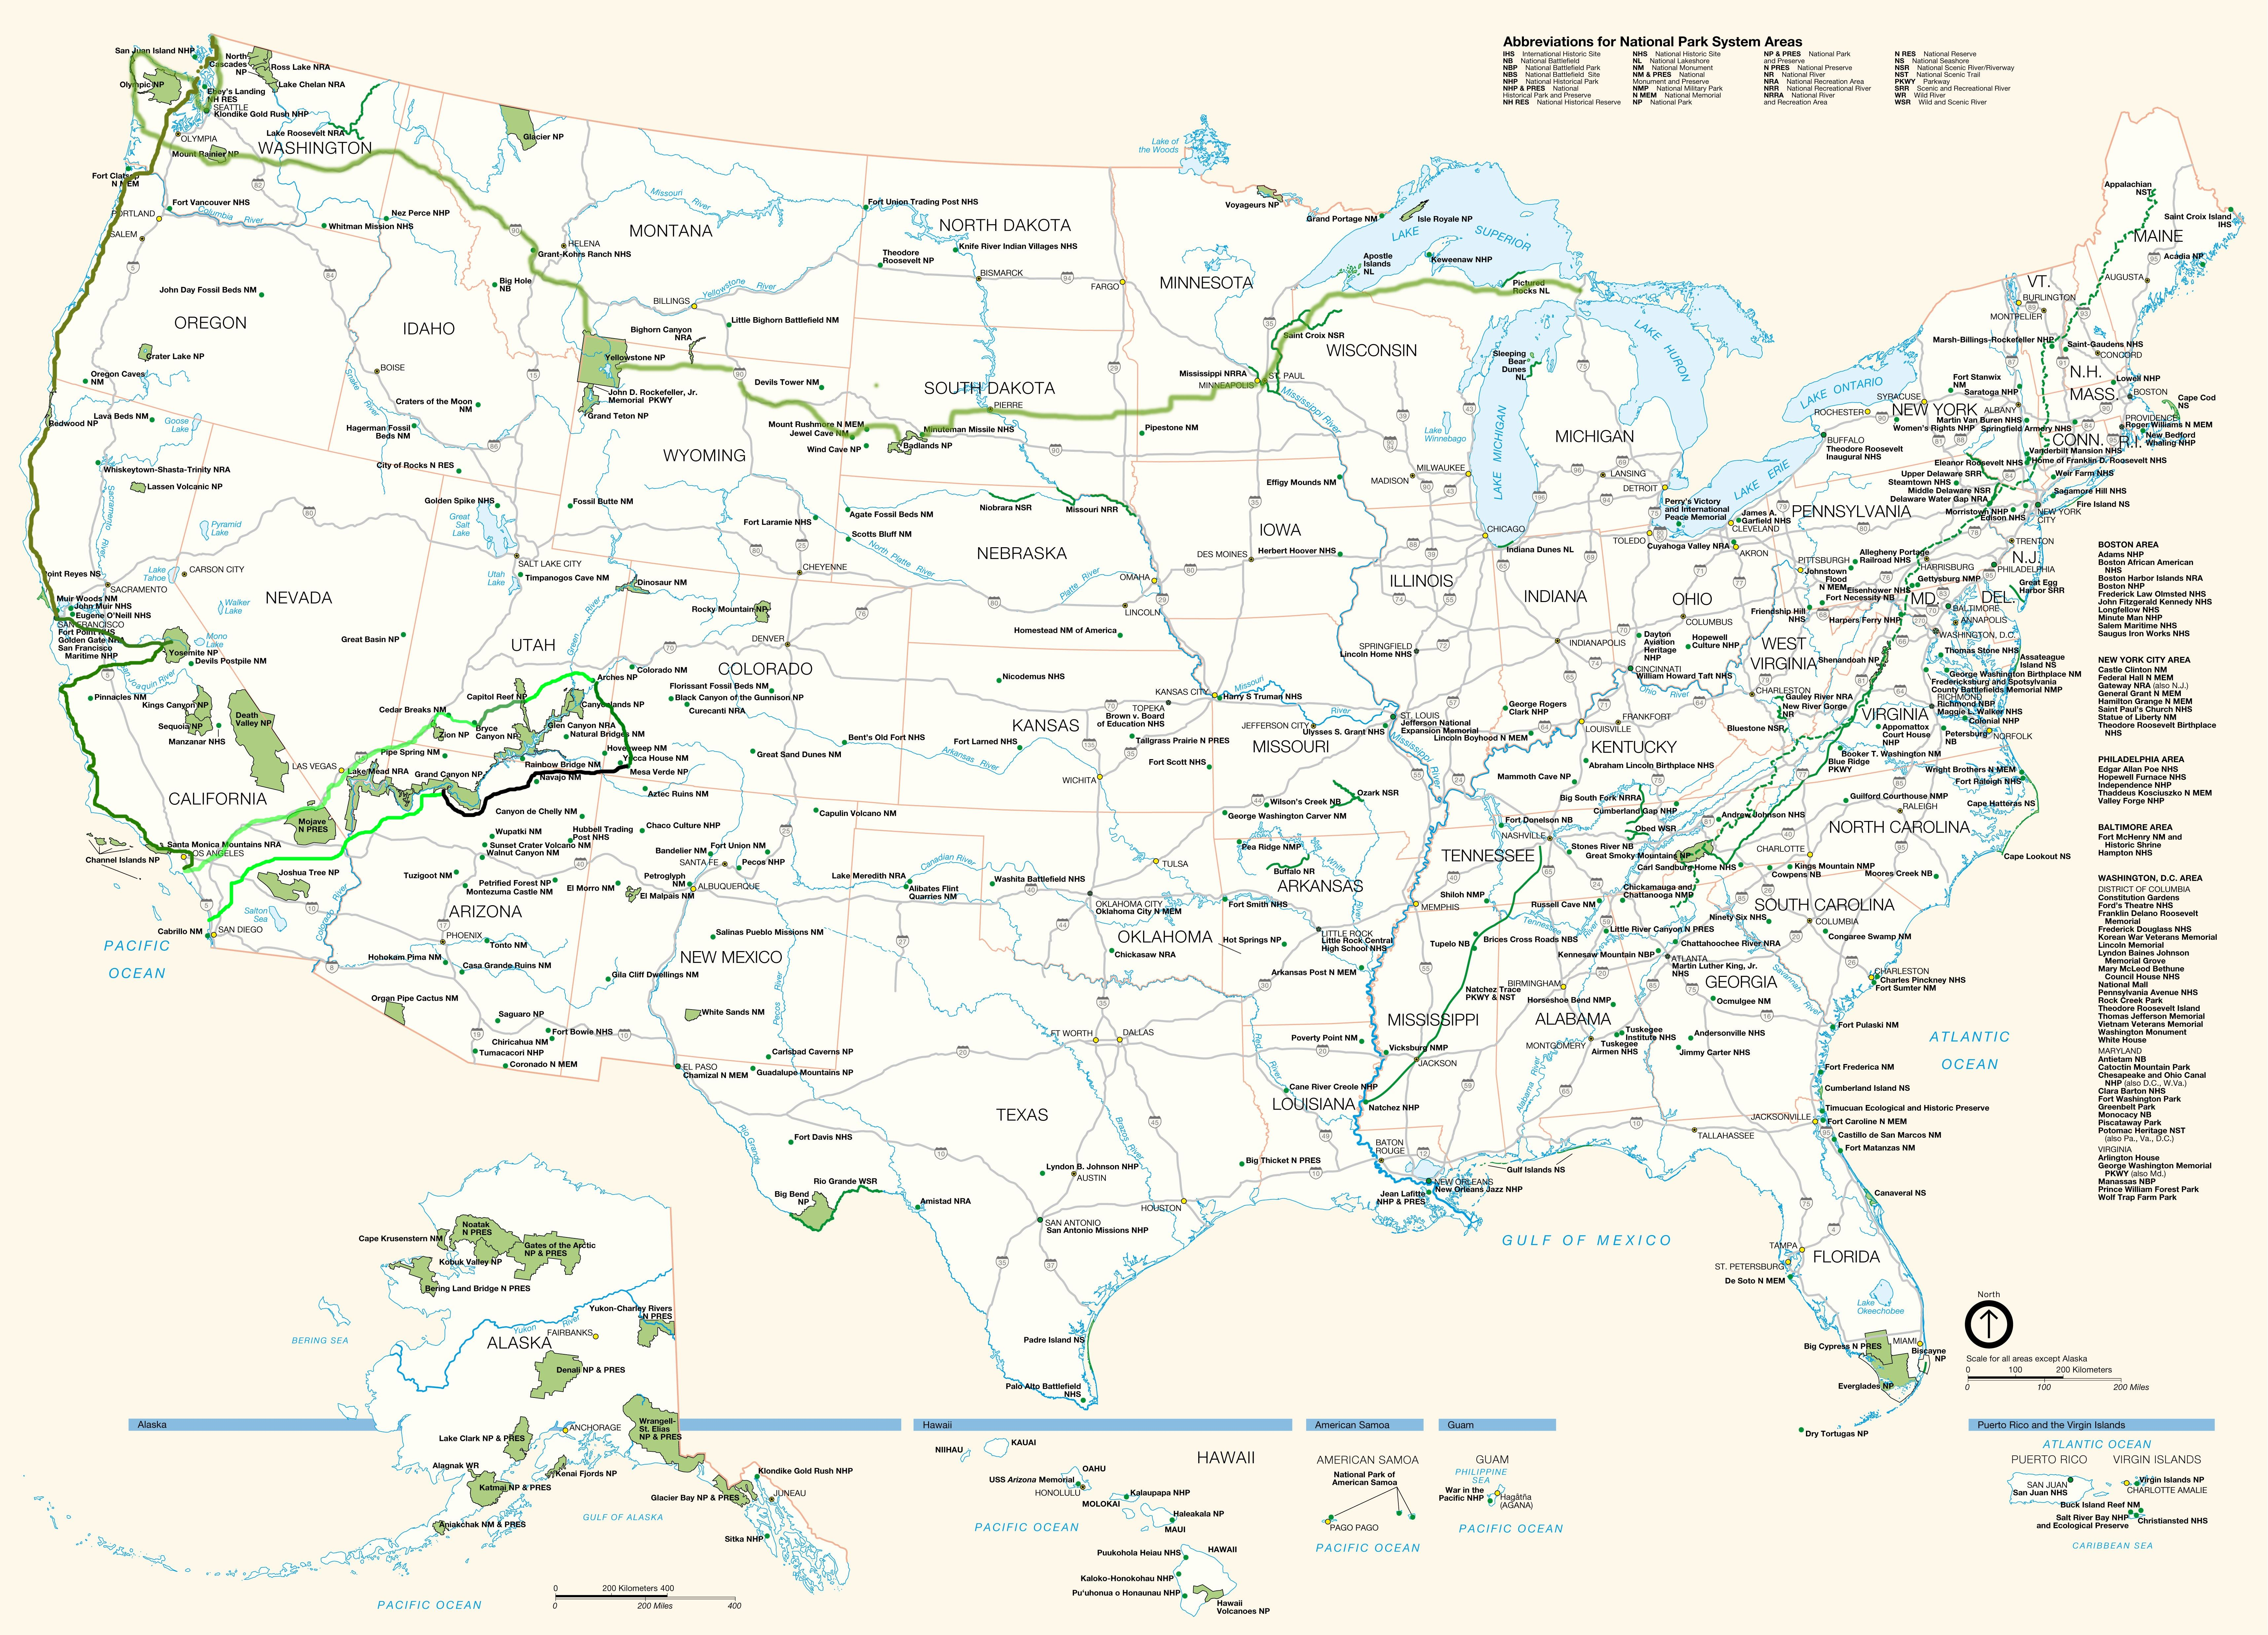 Route  Planner Route  Planner Map Of The Us States Printable - Us road map planner